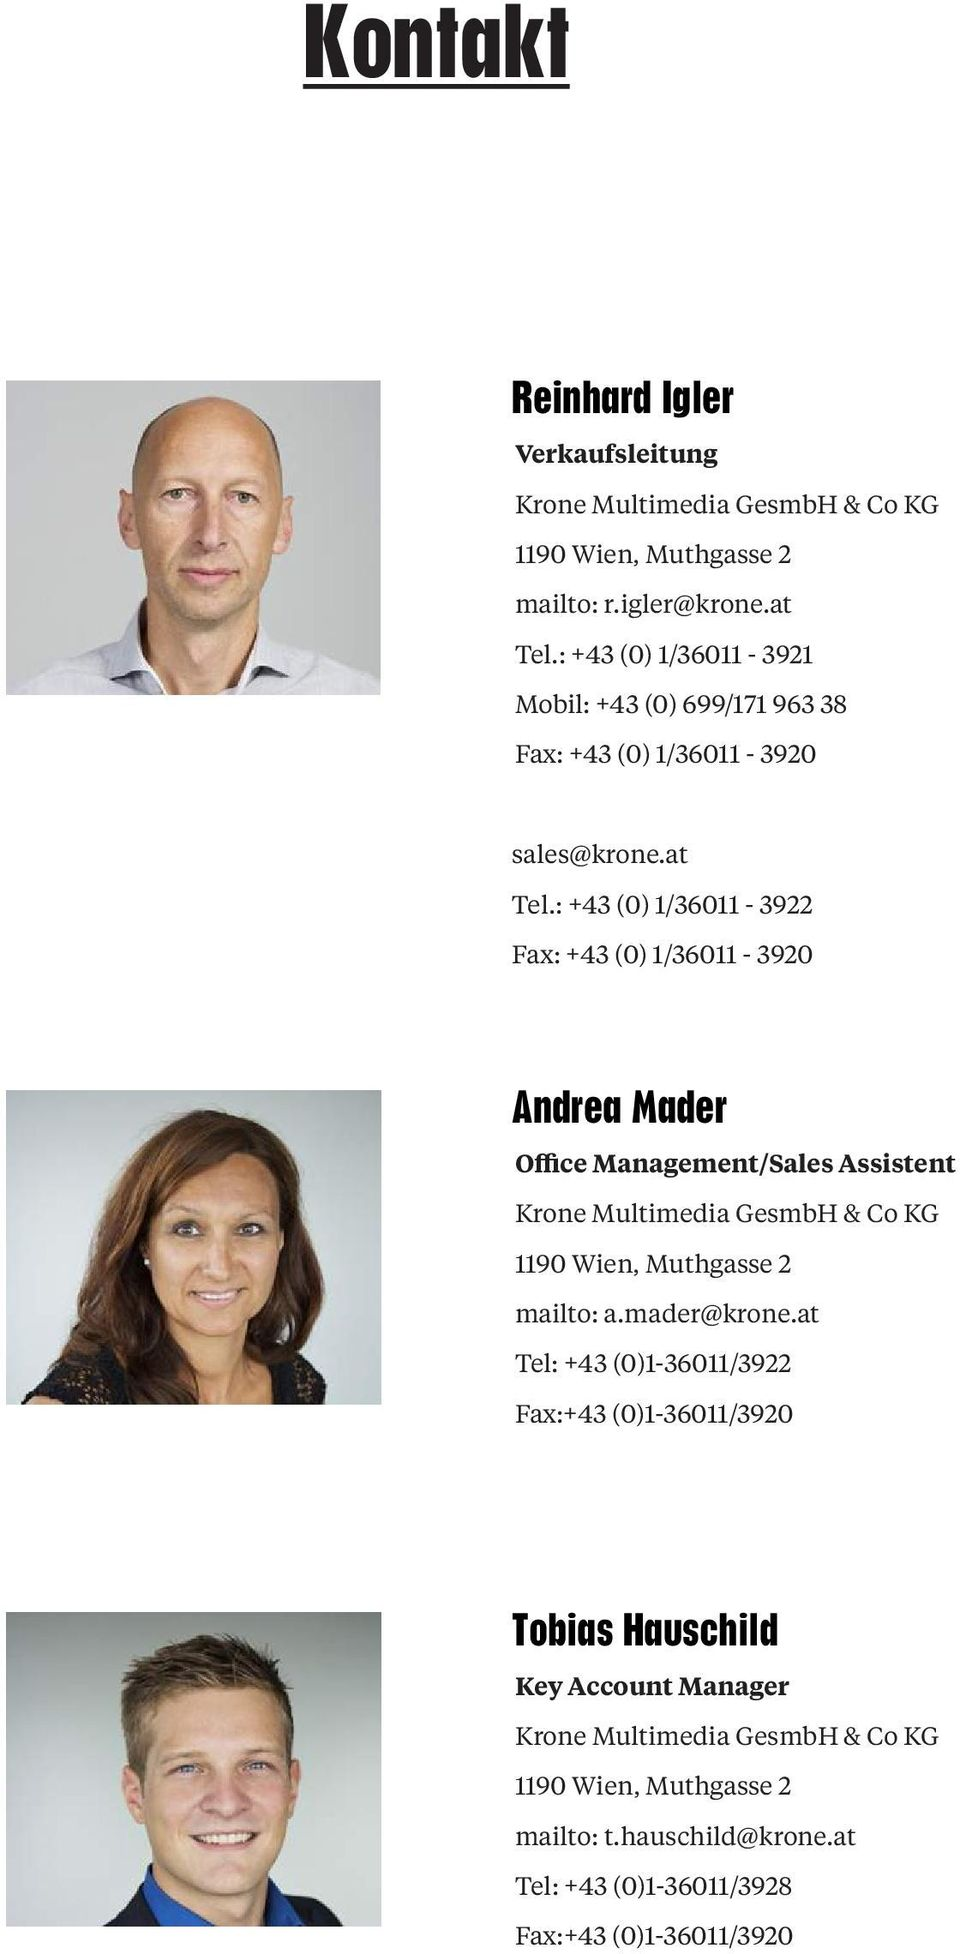 : +43 (0) 1/36011-3922 Fax: +43 (0) 1/36011-3920 Andrea Mader Office Management/Sales Assistent Krone Multimedia GesmbH & Co KG 1190 Wien, Muthgasse 2